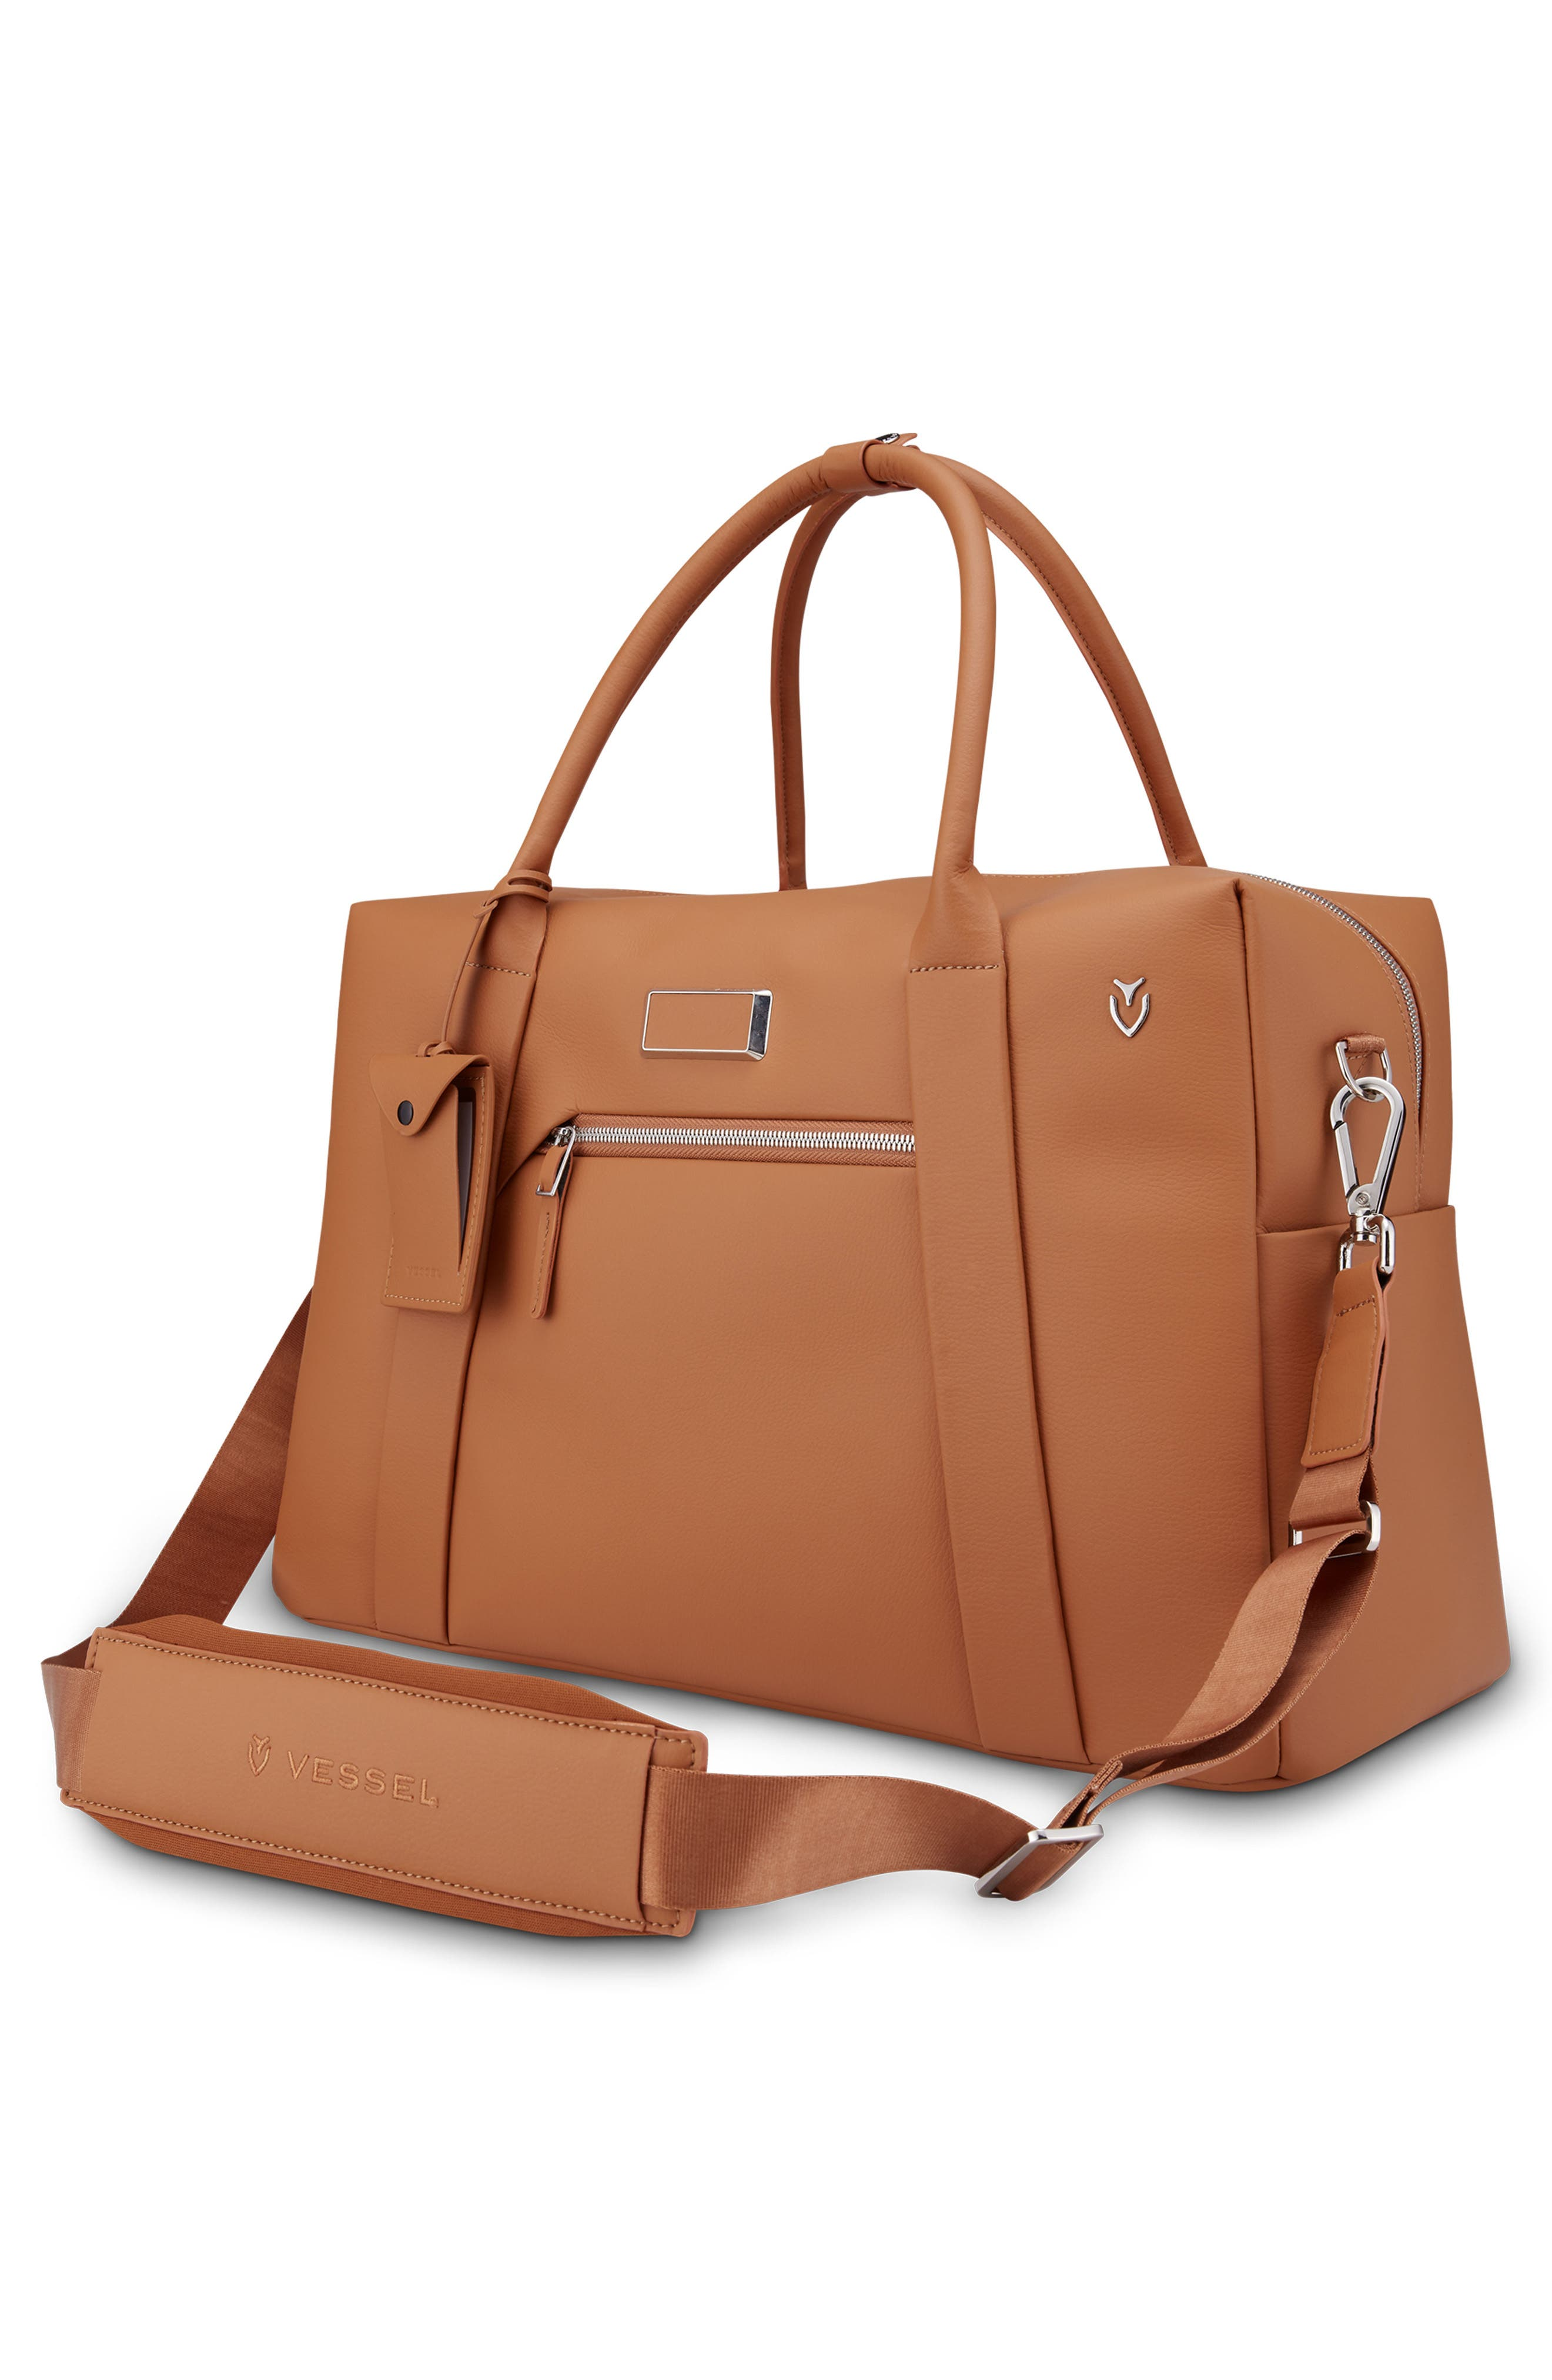 Signature 2.0 Faux Leather Duffel Bag,                             Alternate thumbnail 3, color,                             Pebbled Tan